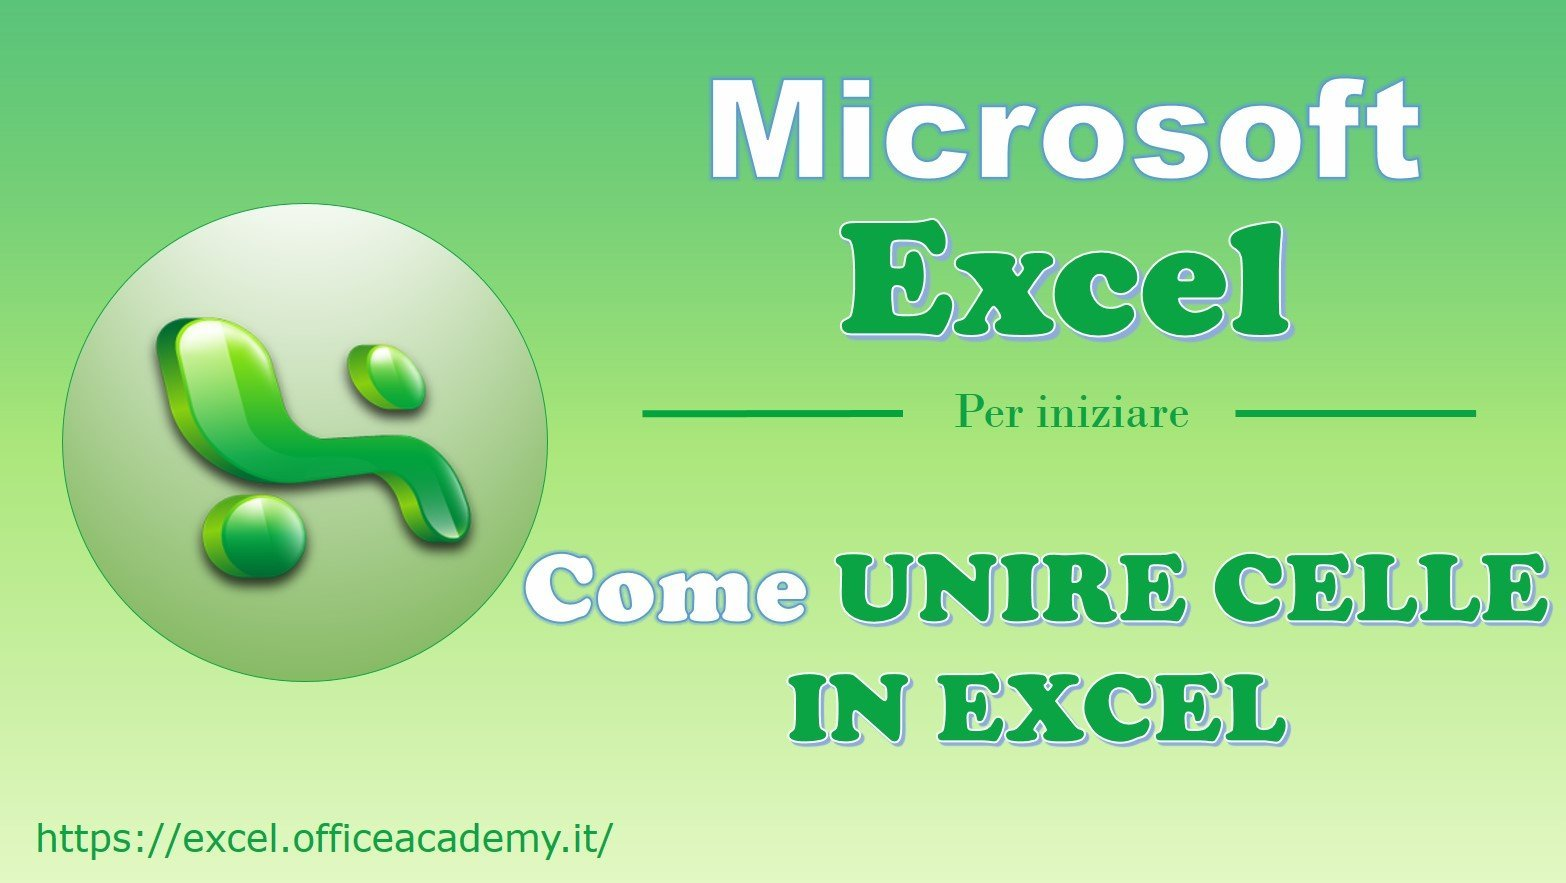 Come unire celle in Excel